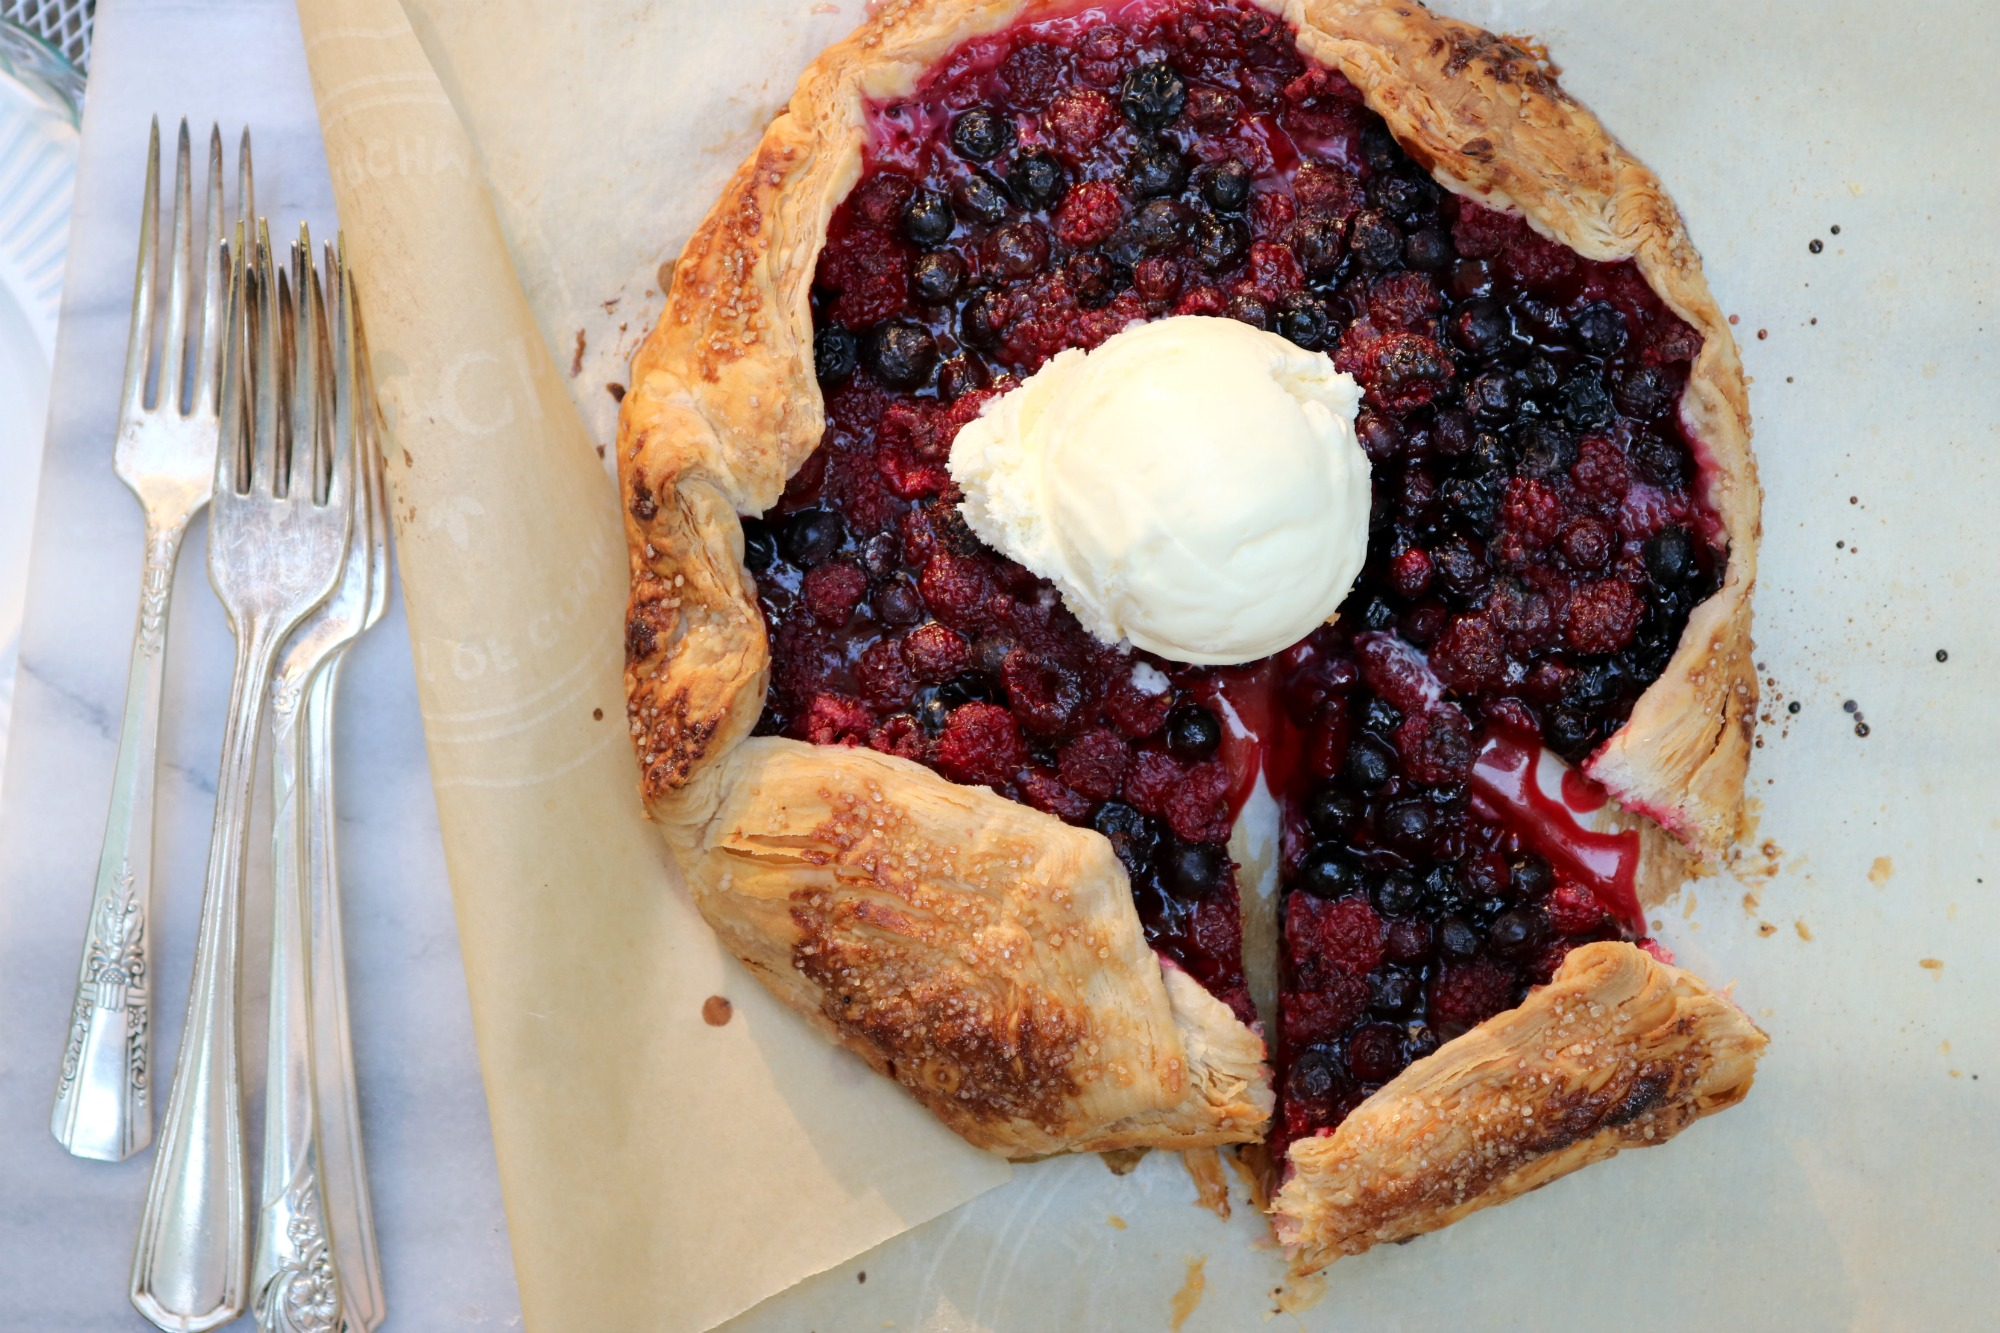 Raspberry-Saskatoon Galette - an easy, summery free-form pie